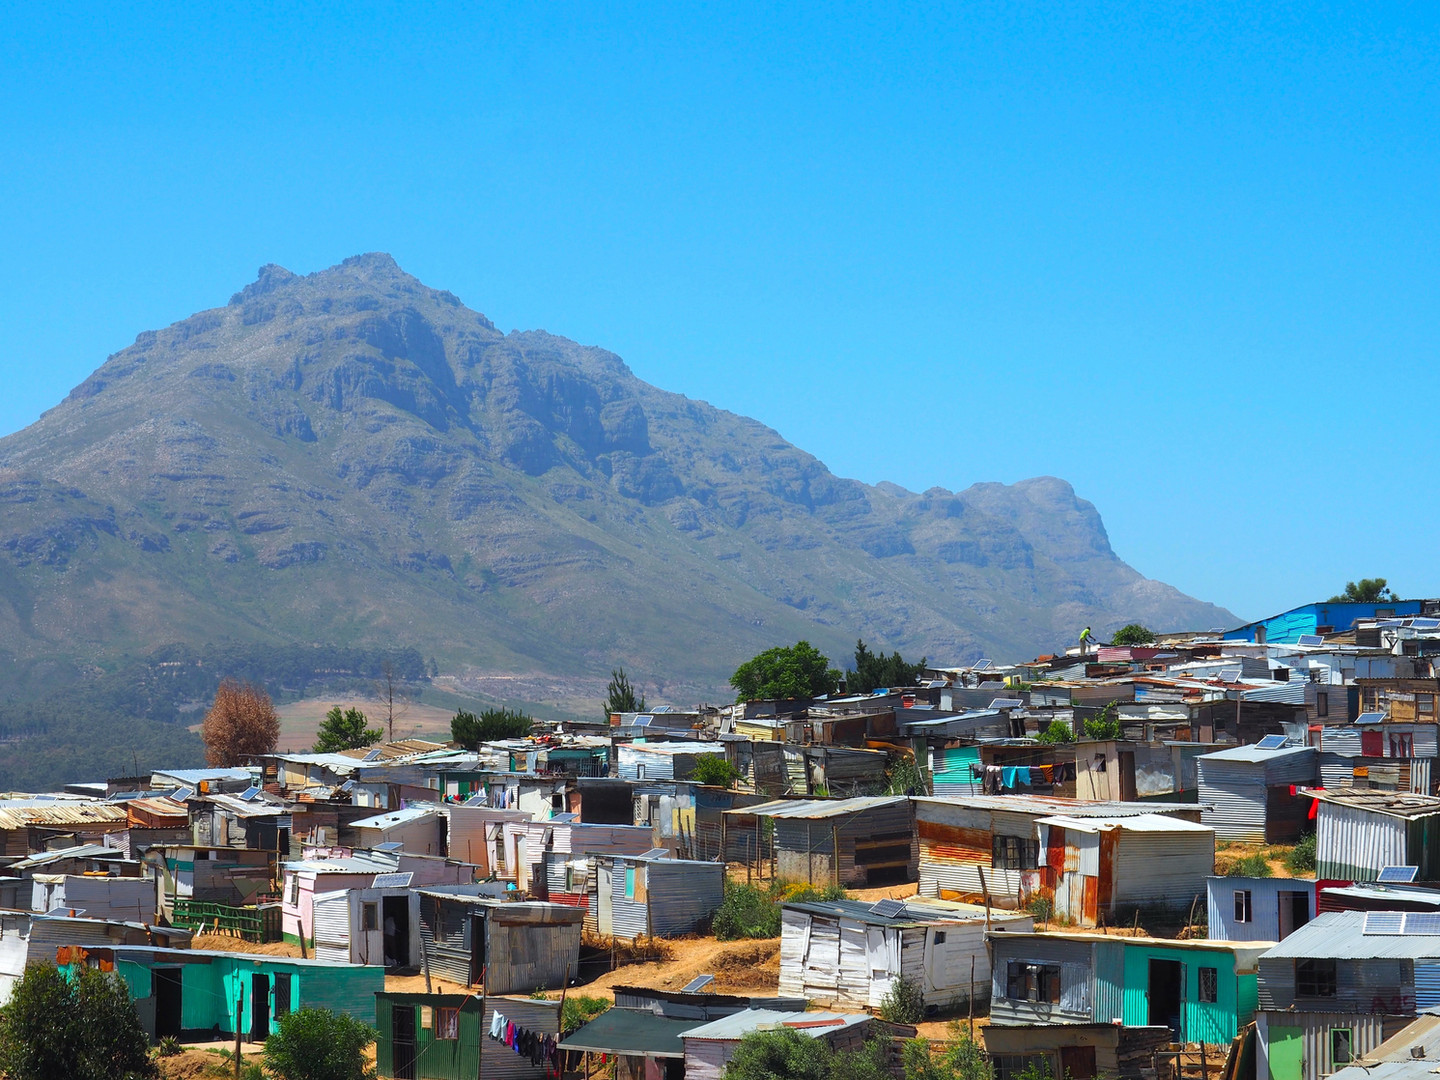 Informal settlement on the outskirts of the city